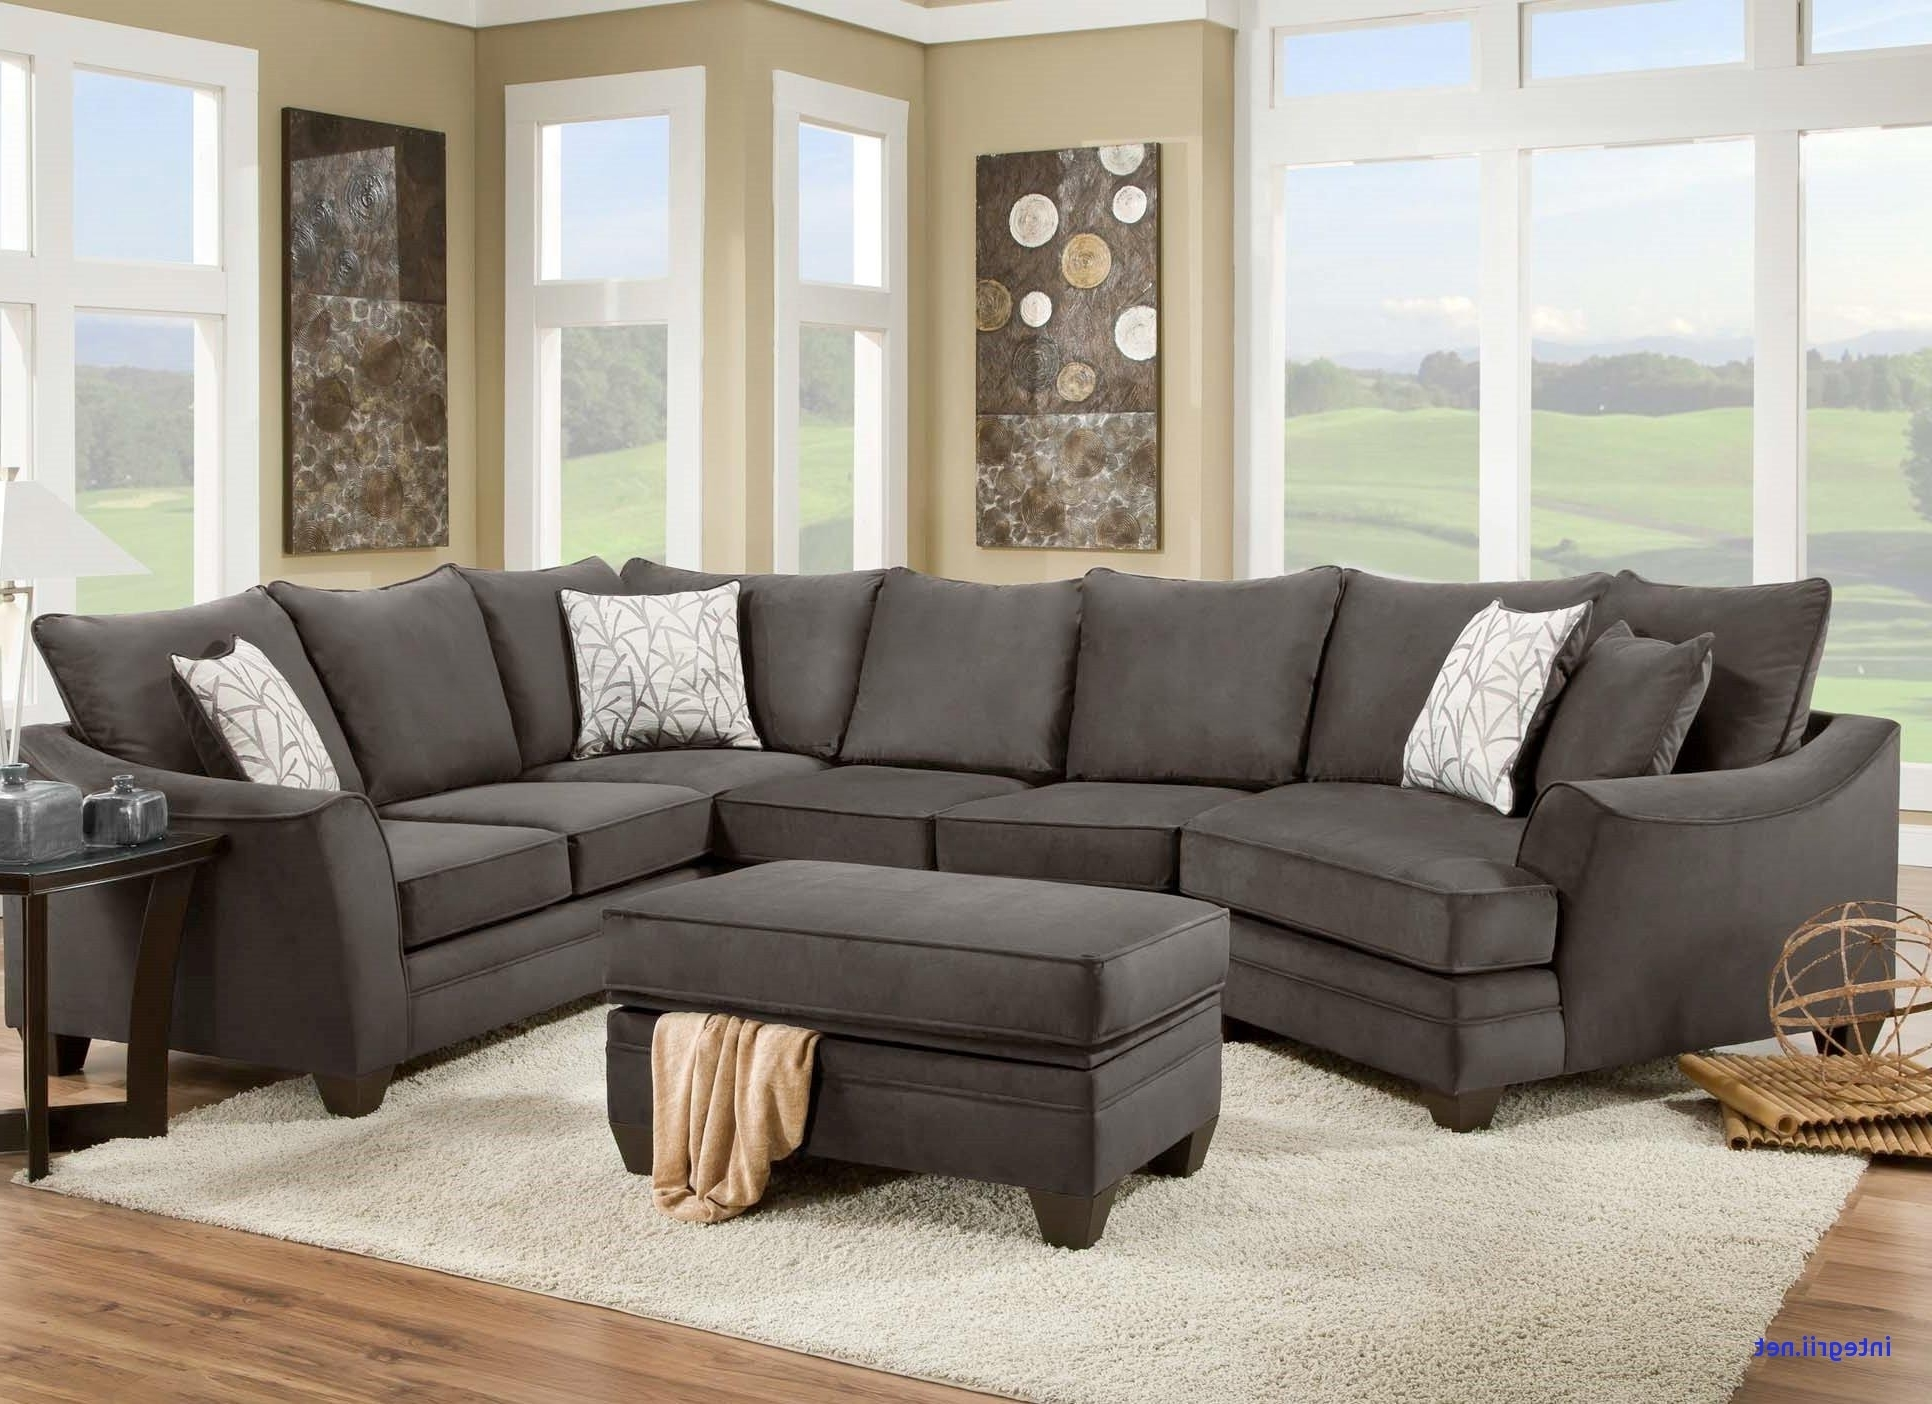 Famous Sectional Furniture Beautiful Affordable Furniture 3650 Sofa Inside Royal Furniture Sectional Sofas (View 3 of 15)